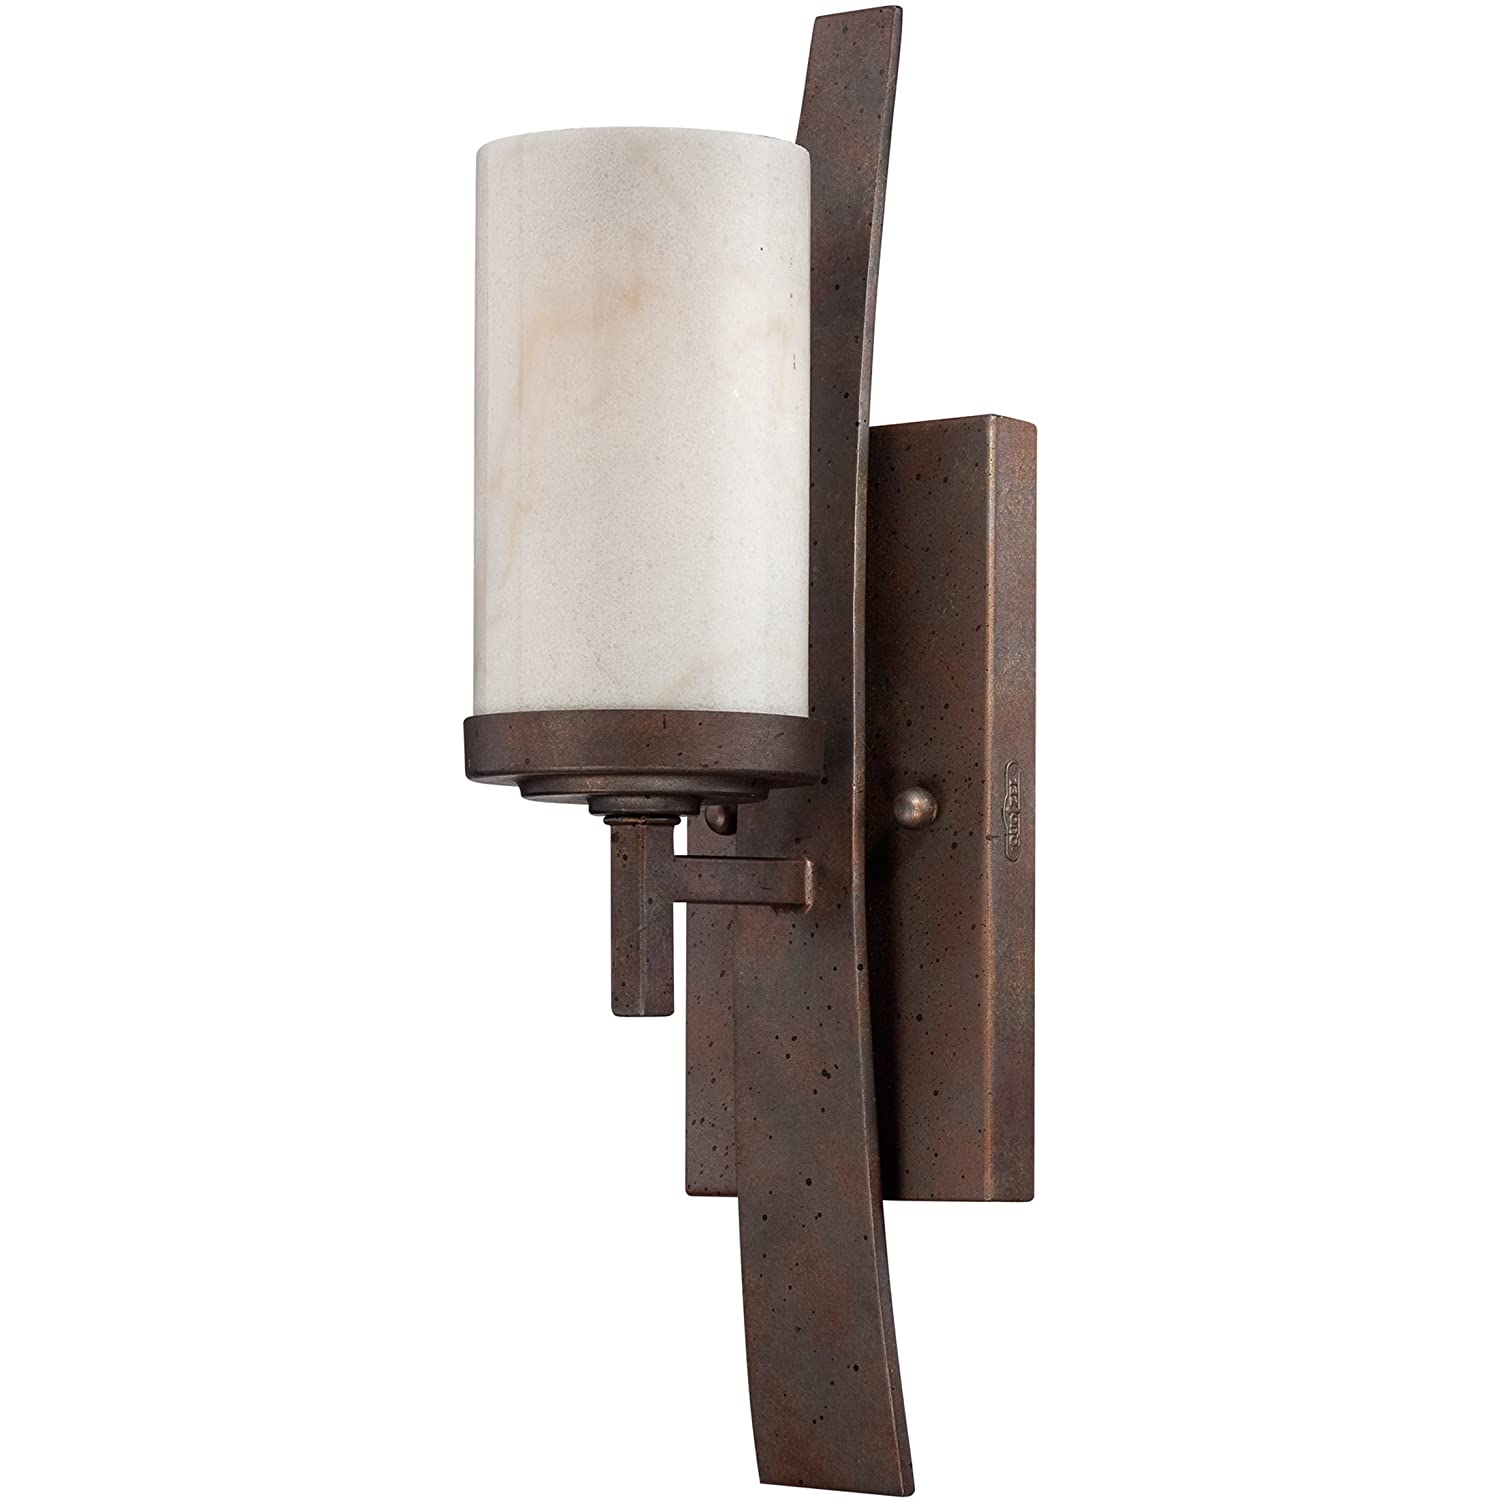 Iron Gate Small Quoizel KY8701IB Kyle Rustic Wall Sconce, 1-Light, 100 Watts, Iron Gate (16  H x 5  W)